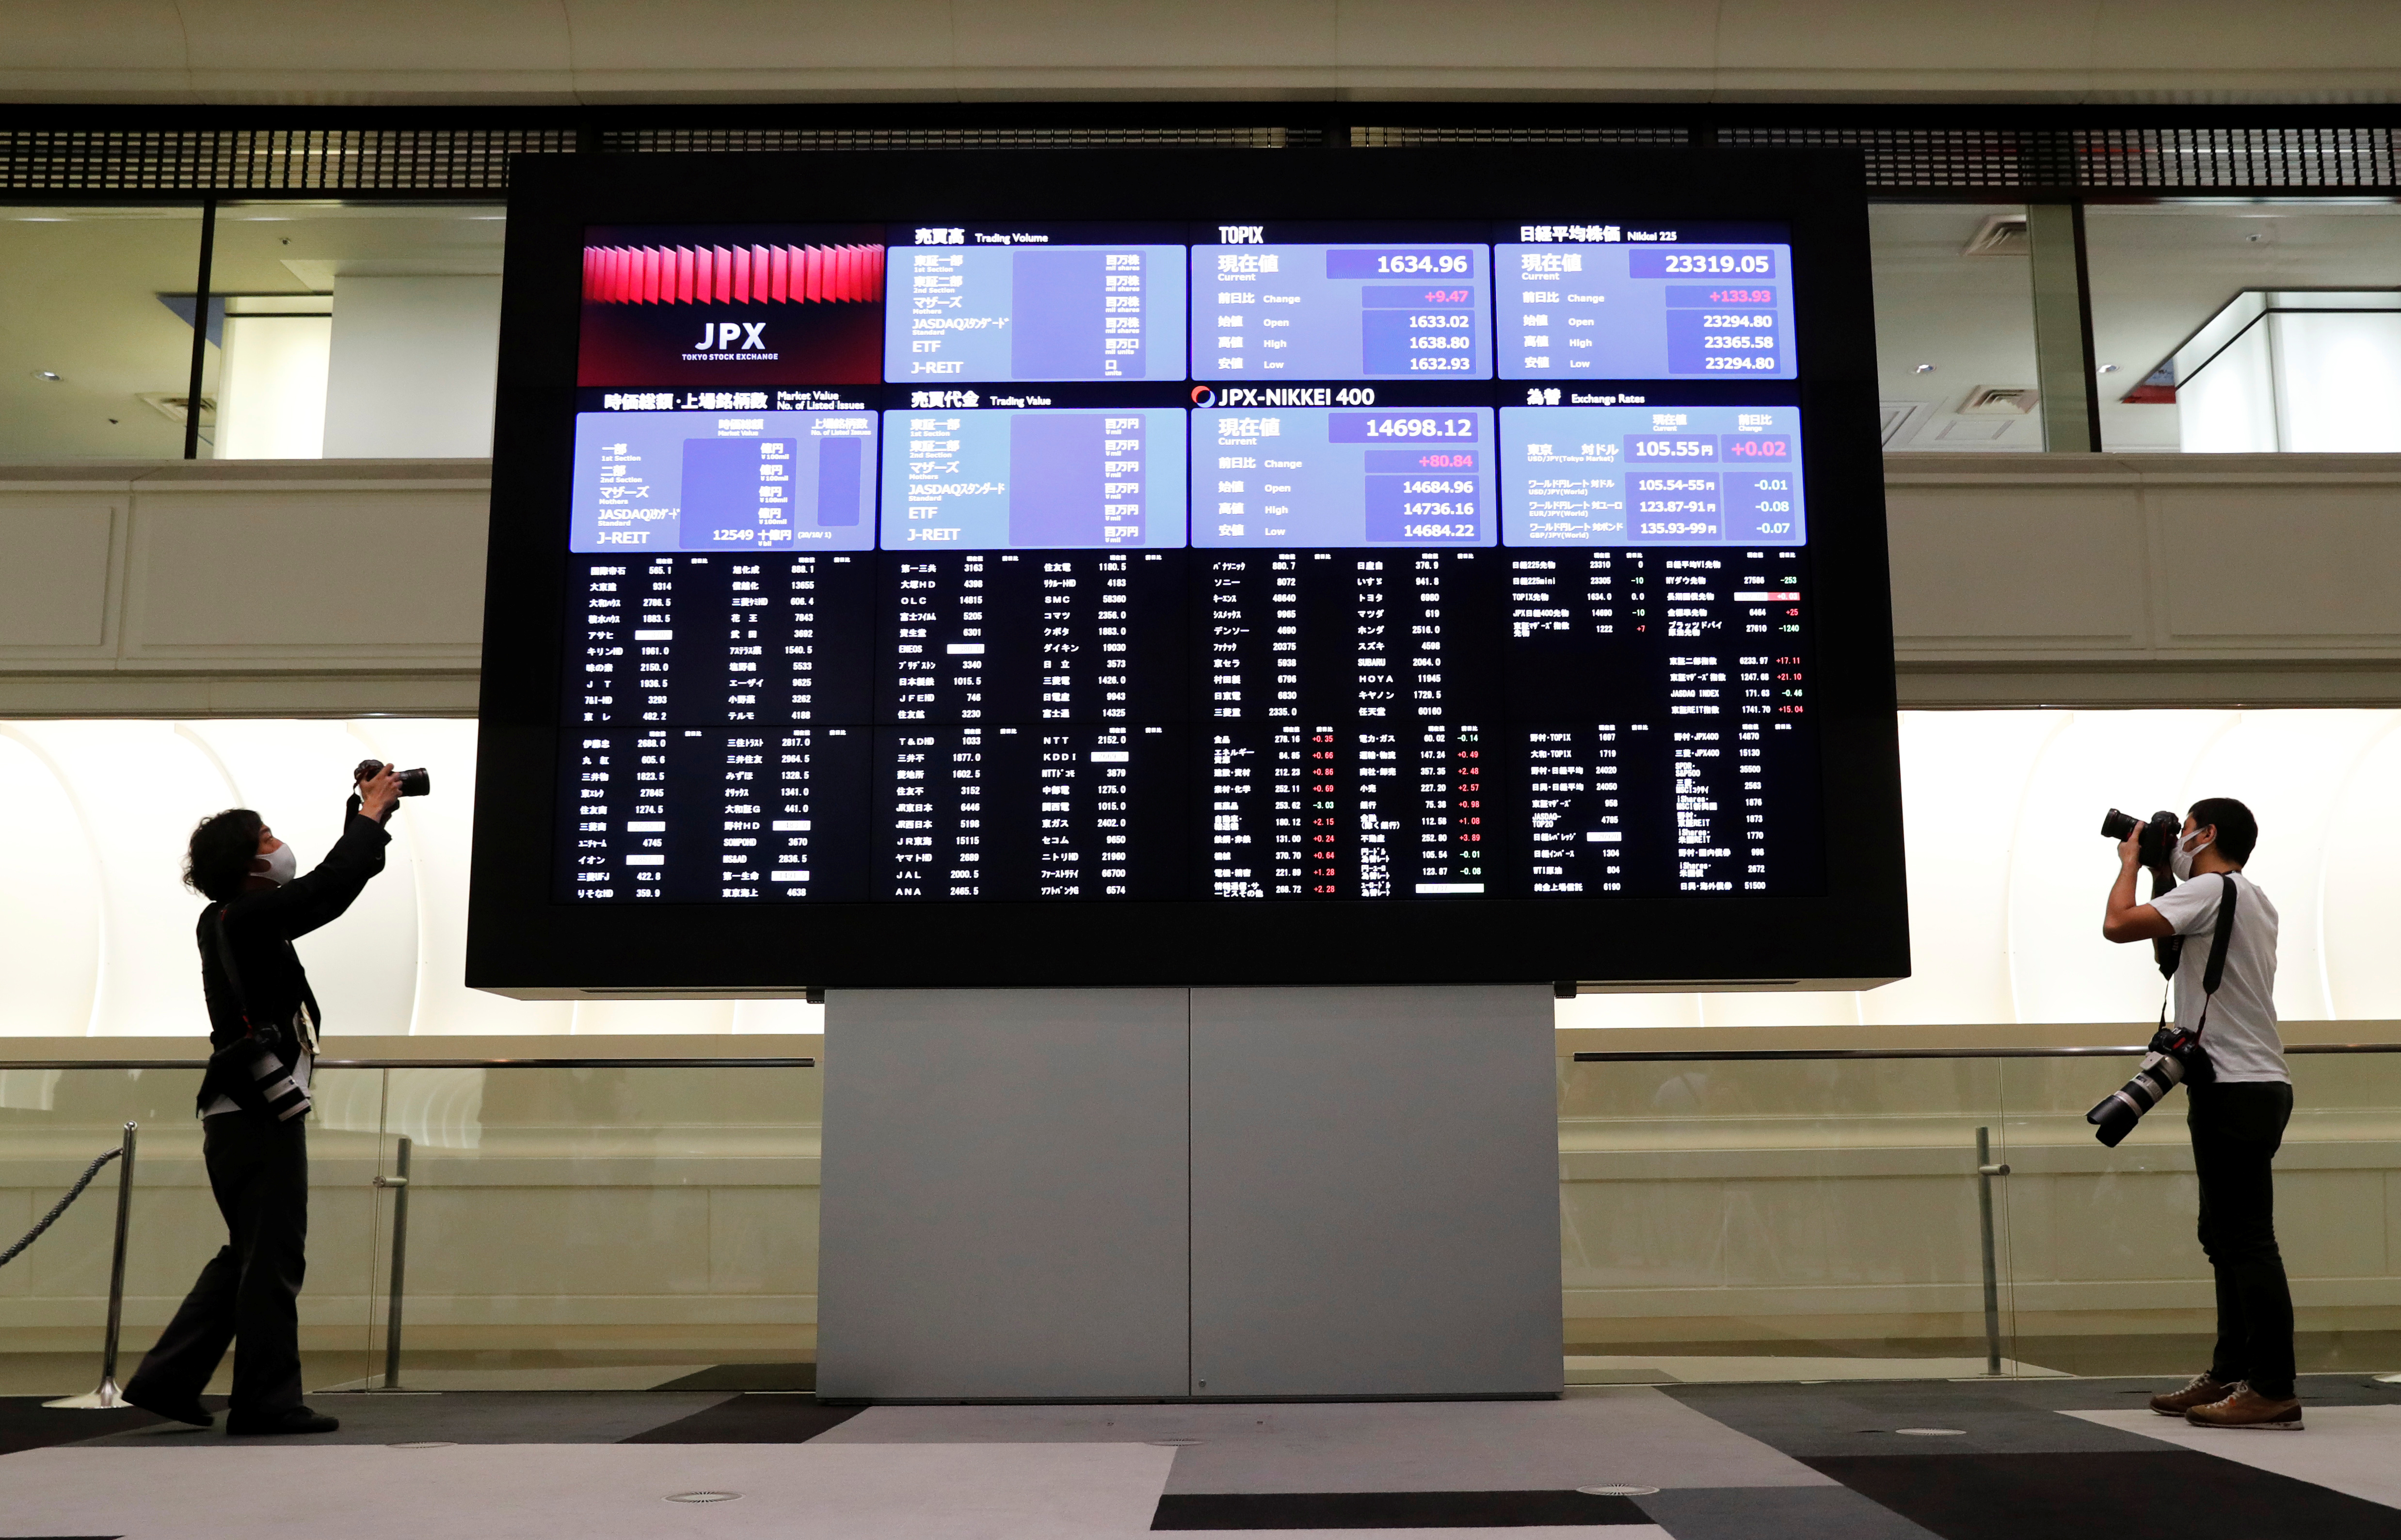 Photographers take photos near a large screen showing stock prices at the Tokyo Stock Exchange (TSE) after market opens in Tokyo, Japan October 2, 2020. REUTERS/Kim Kyung-Hoon